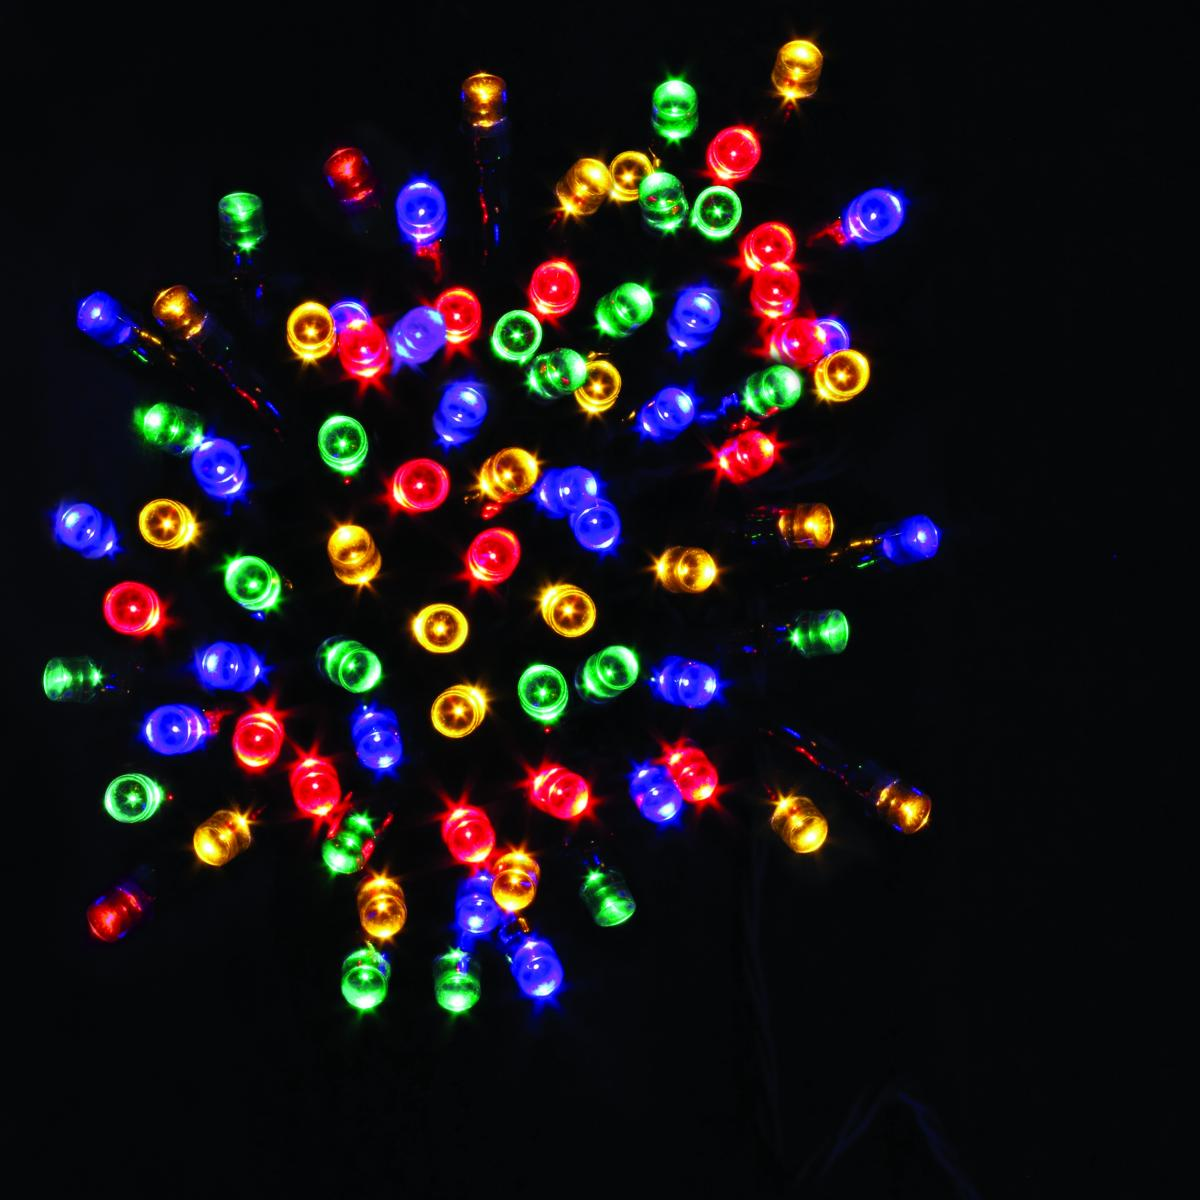 50 Battery operated Timer String Lights - Multi Coloured – Now Only £4.00